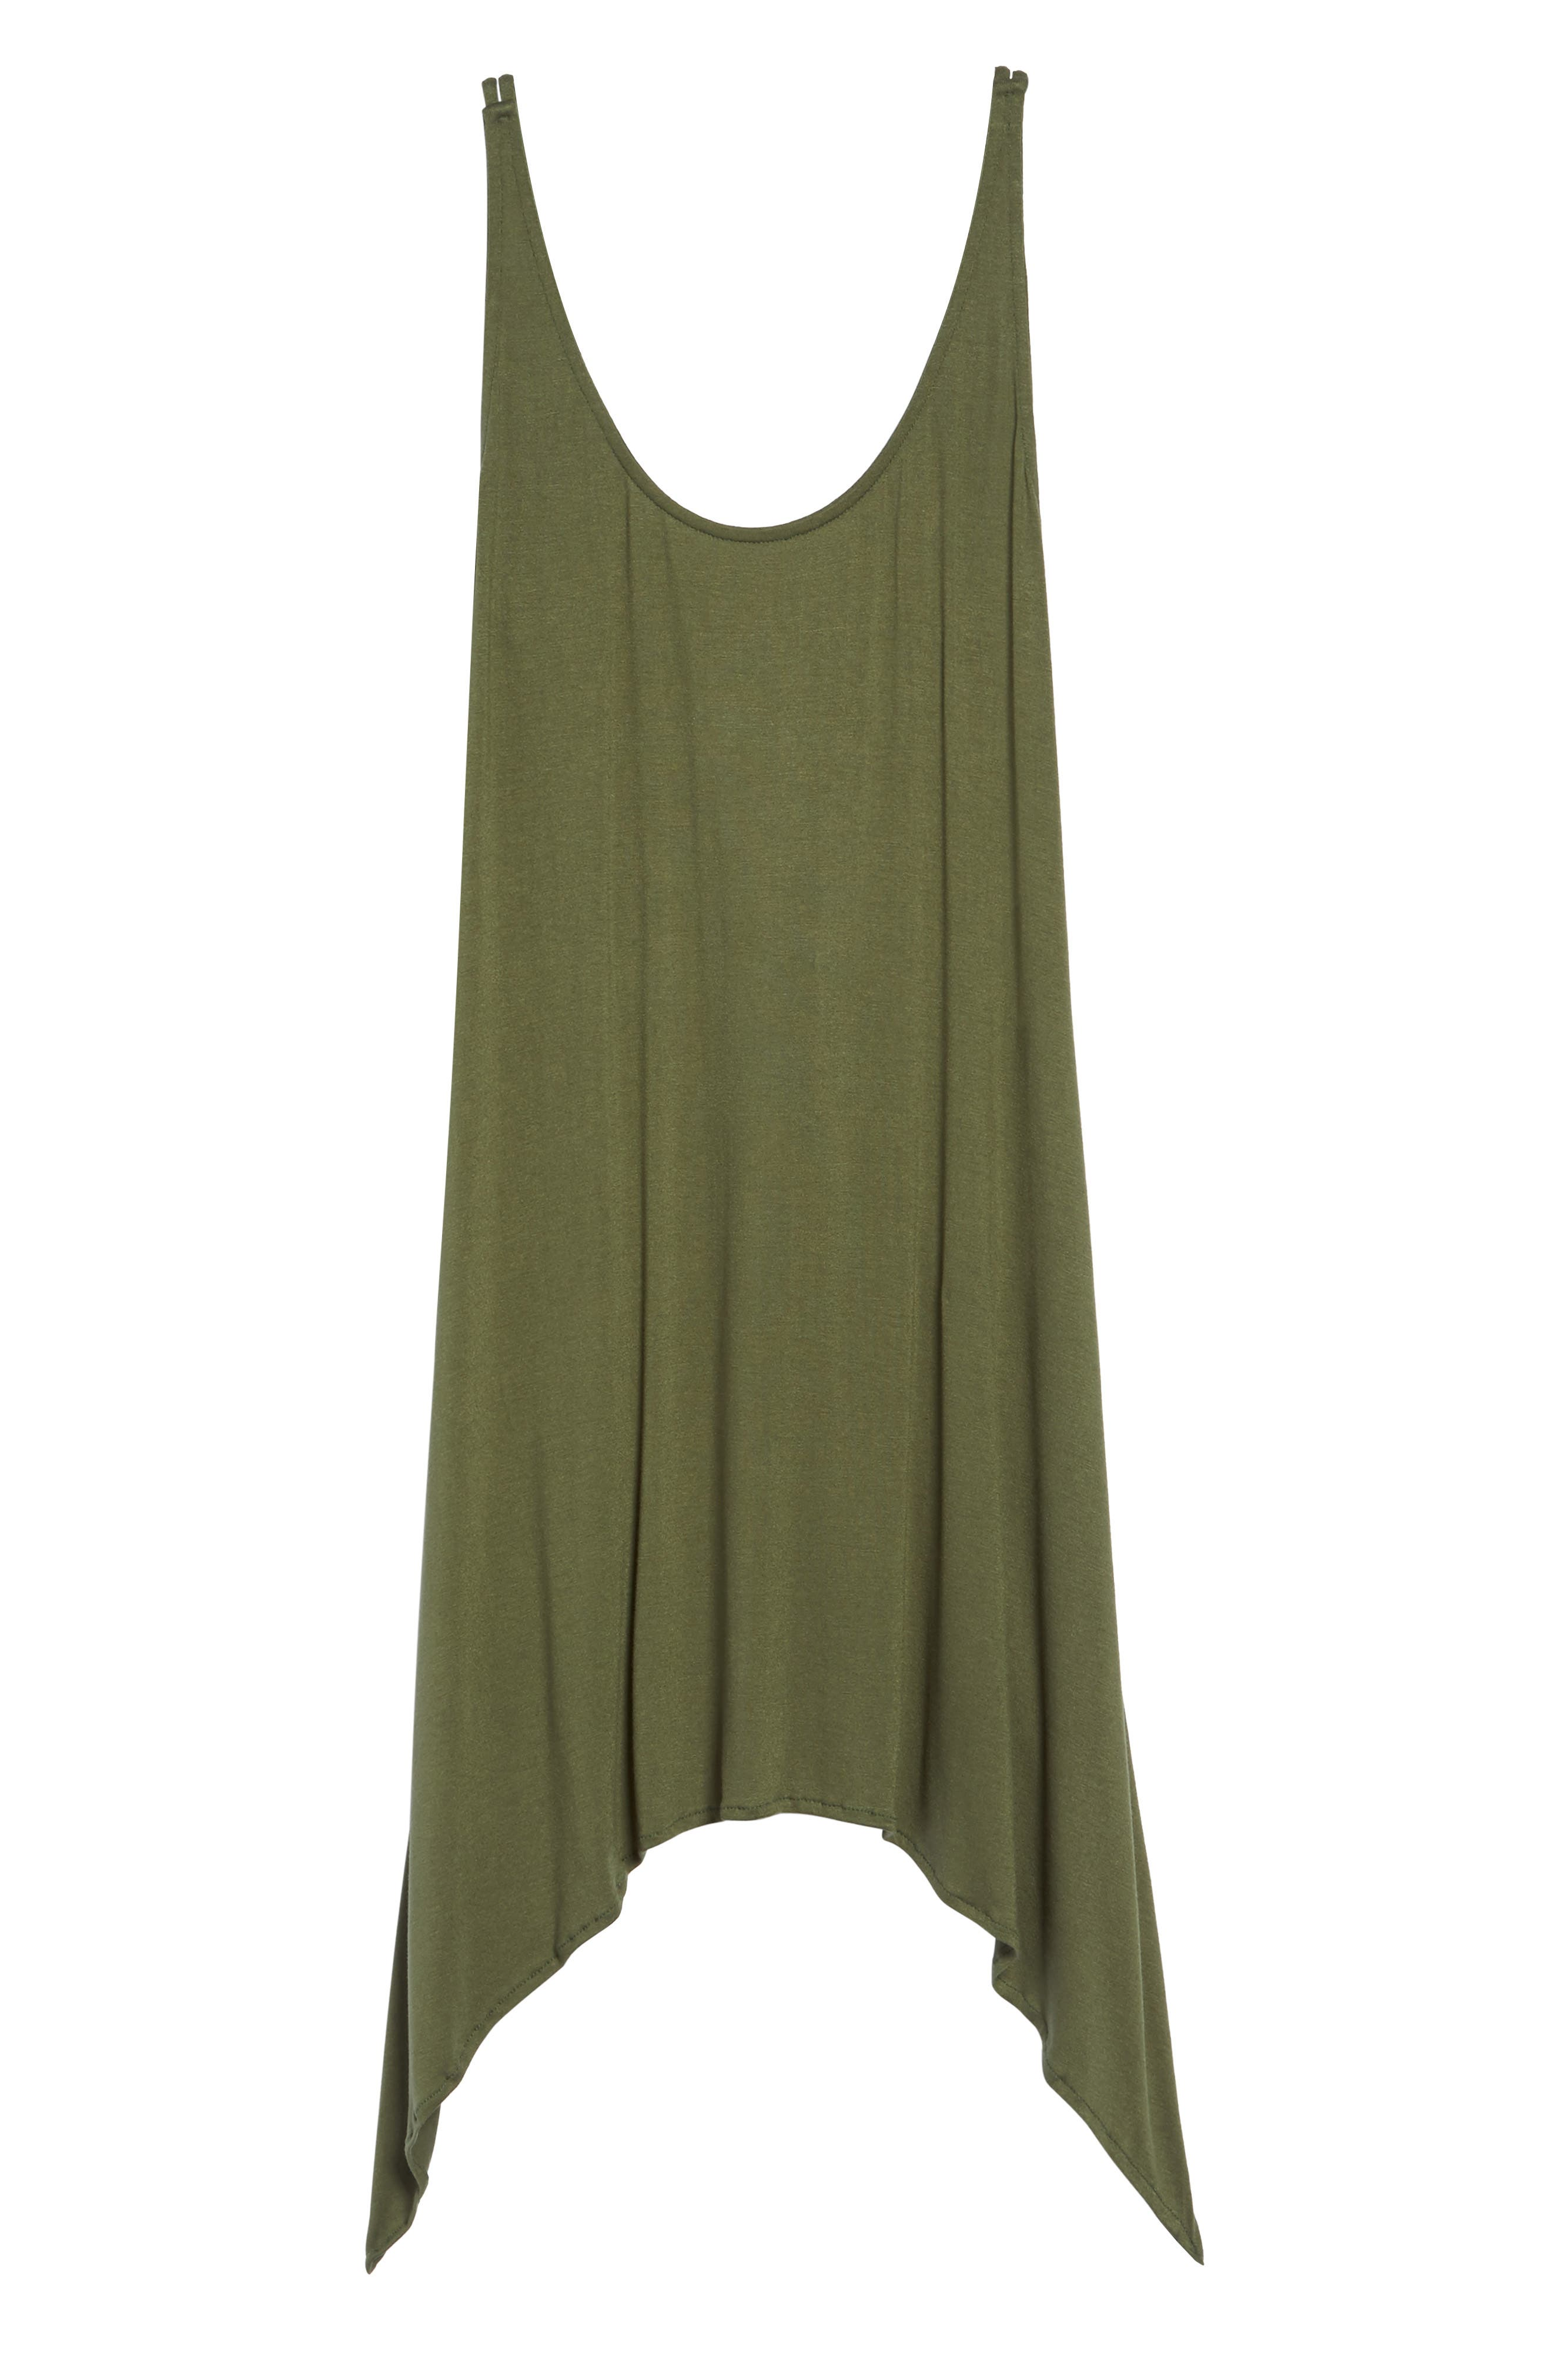 Take Cover Cover-Up Dress,                             Alternate thumbnail 6, color,                             302